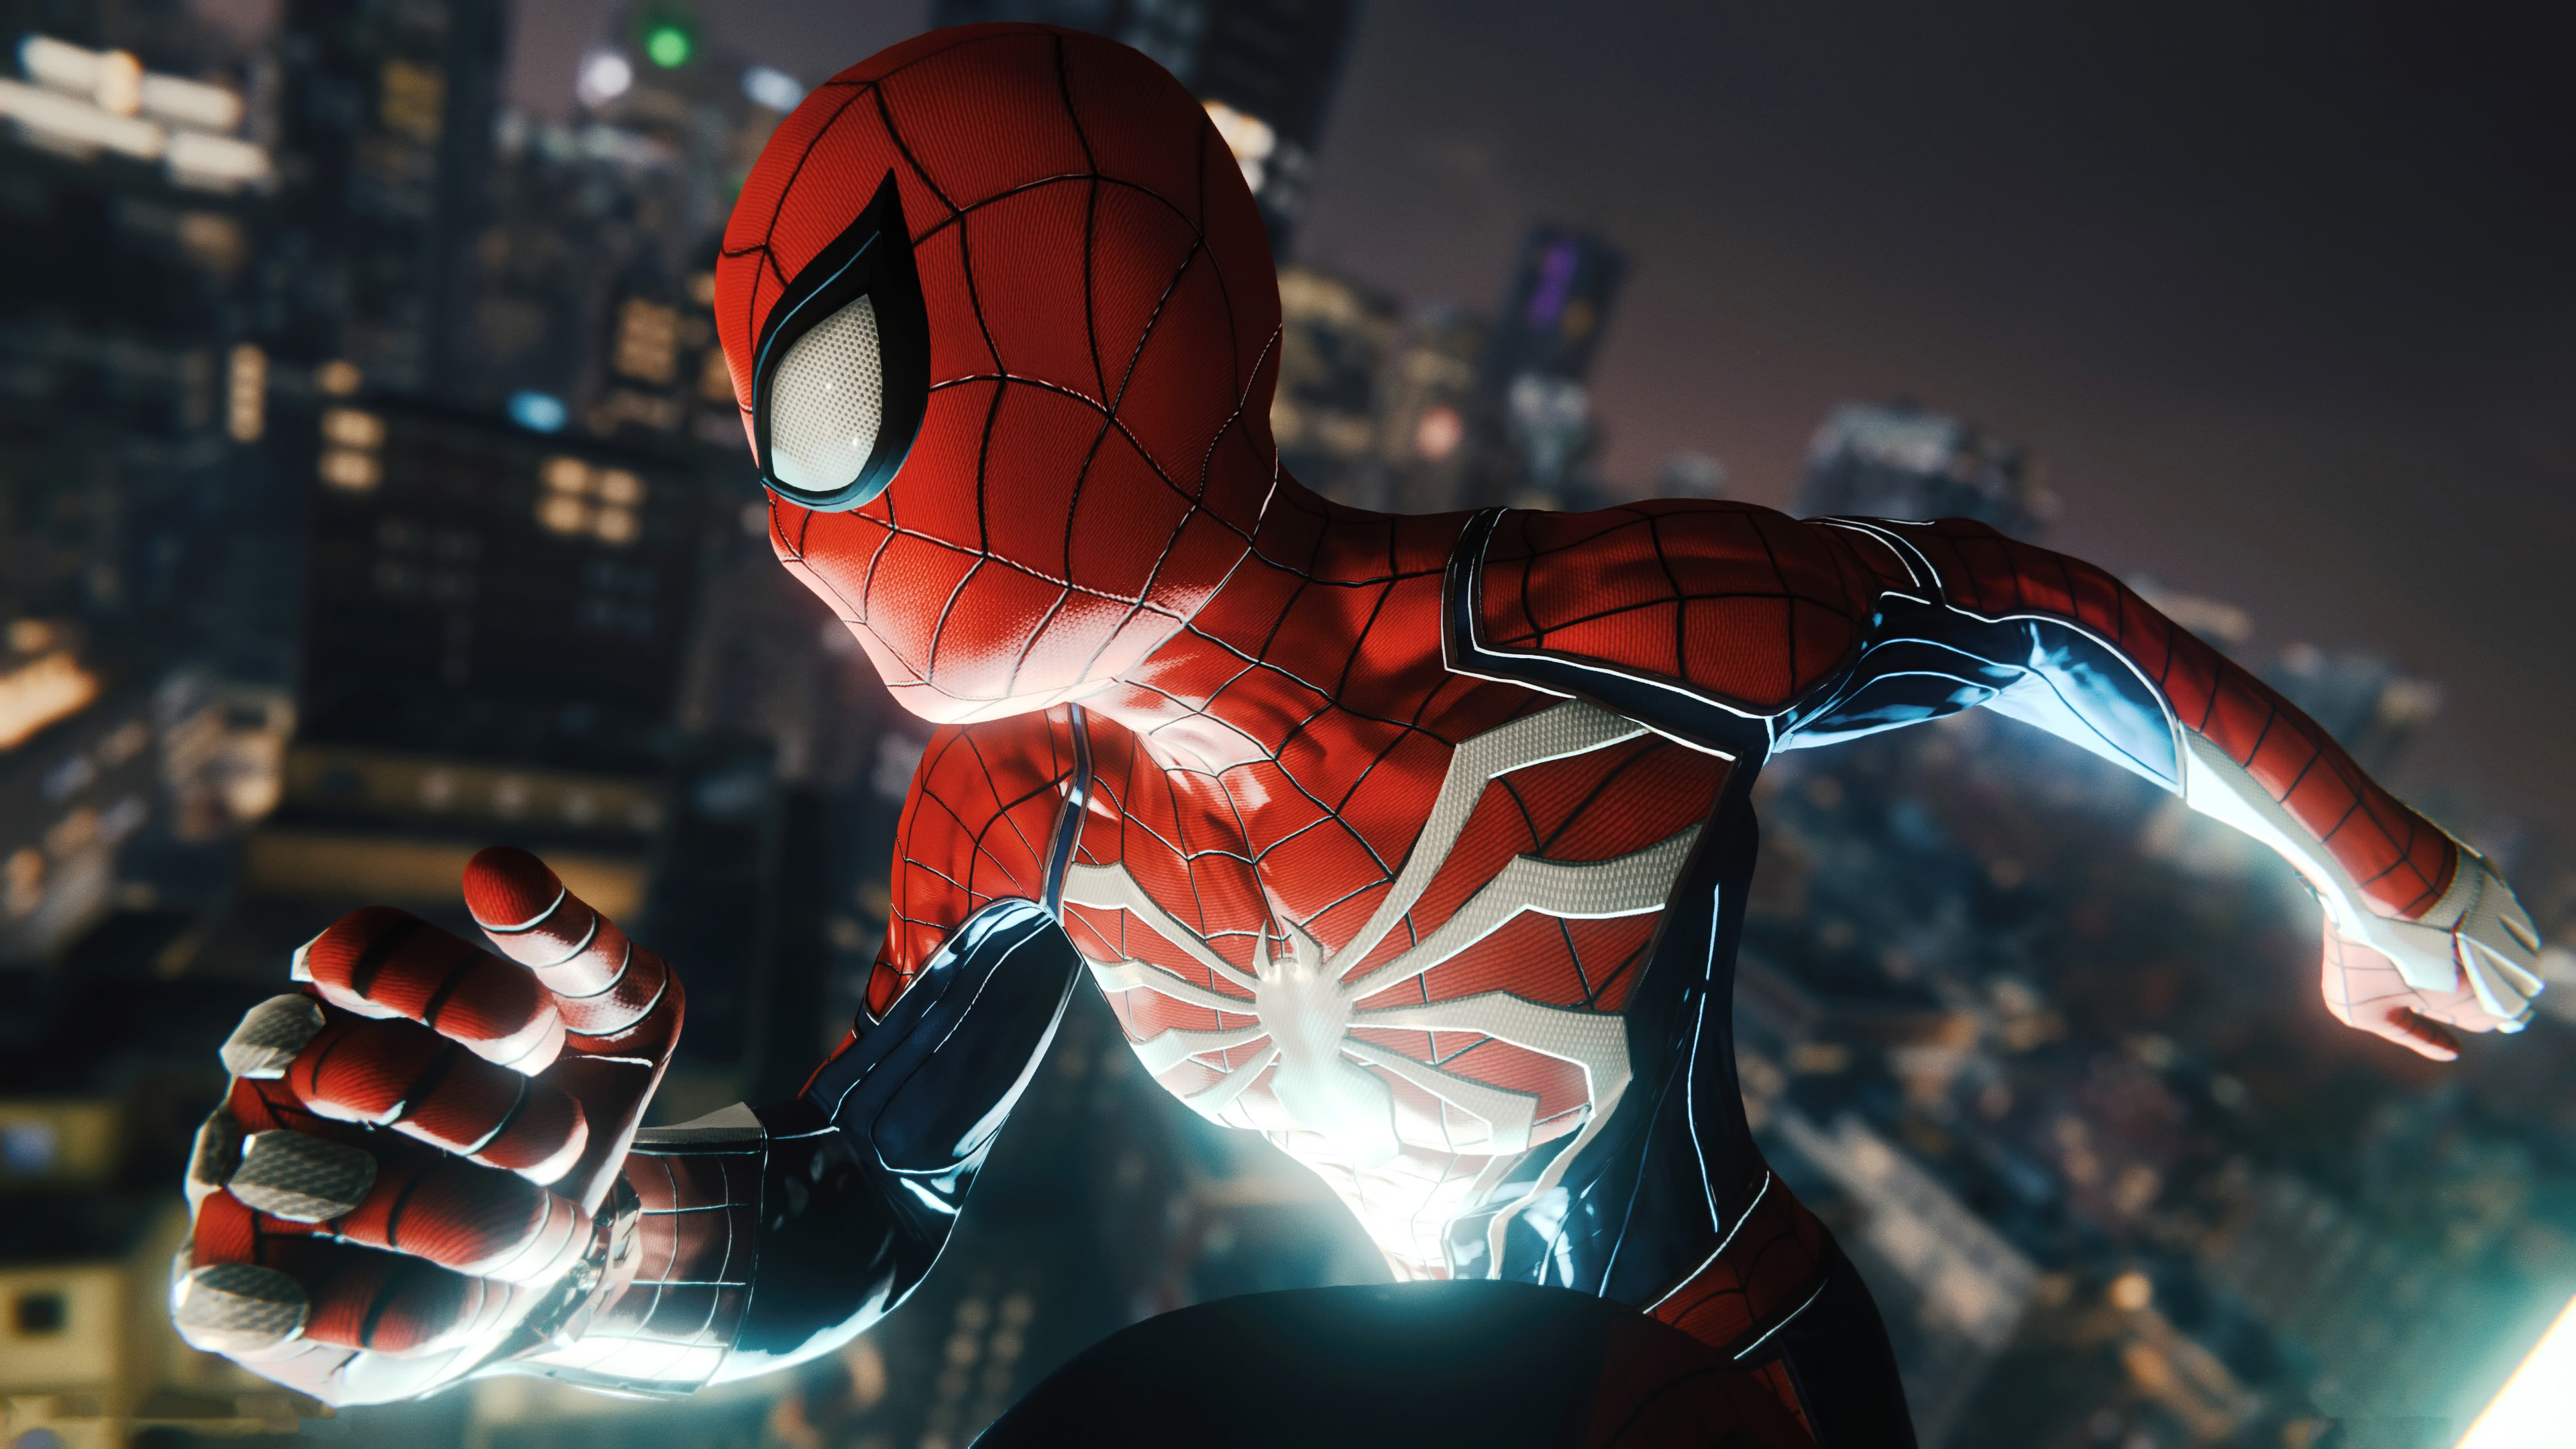 Wallpaper 4k Marvel Spiderman Ps4 Game 2019 2019 Games